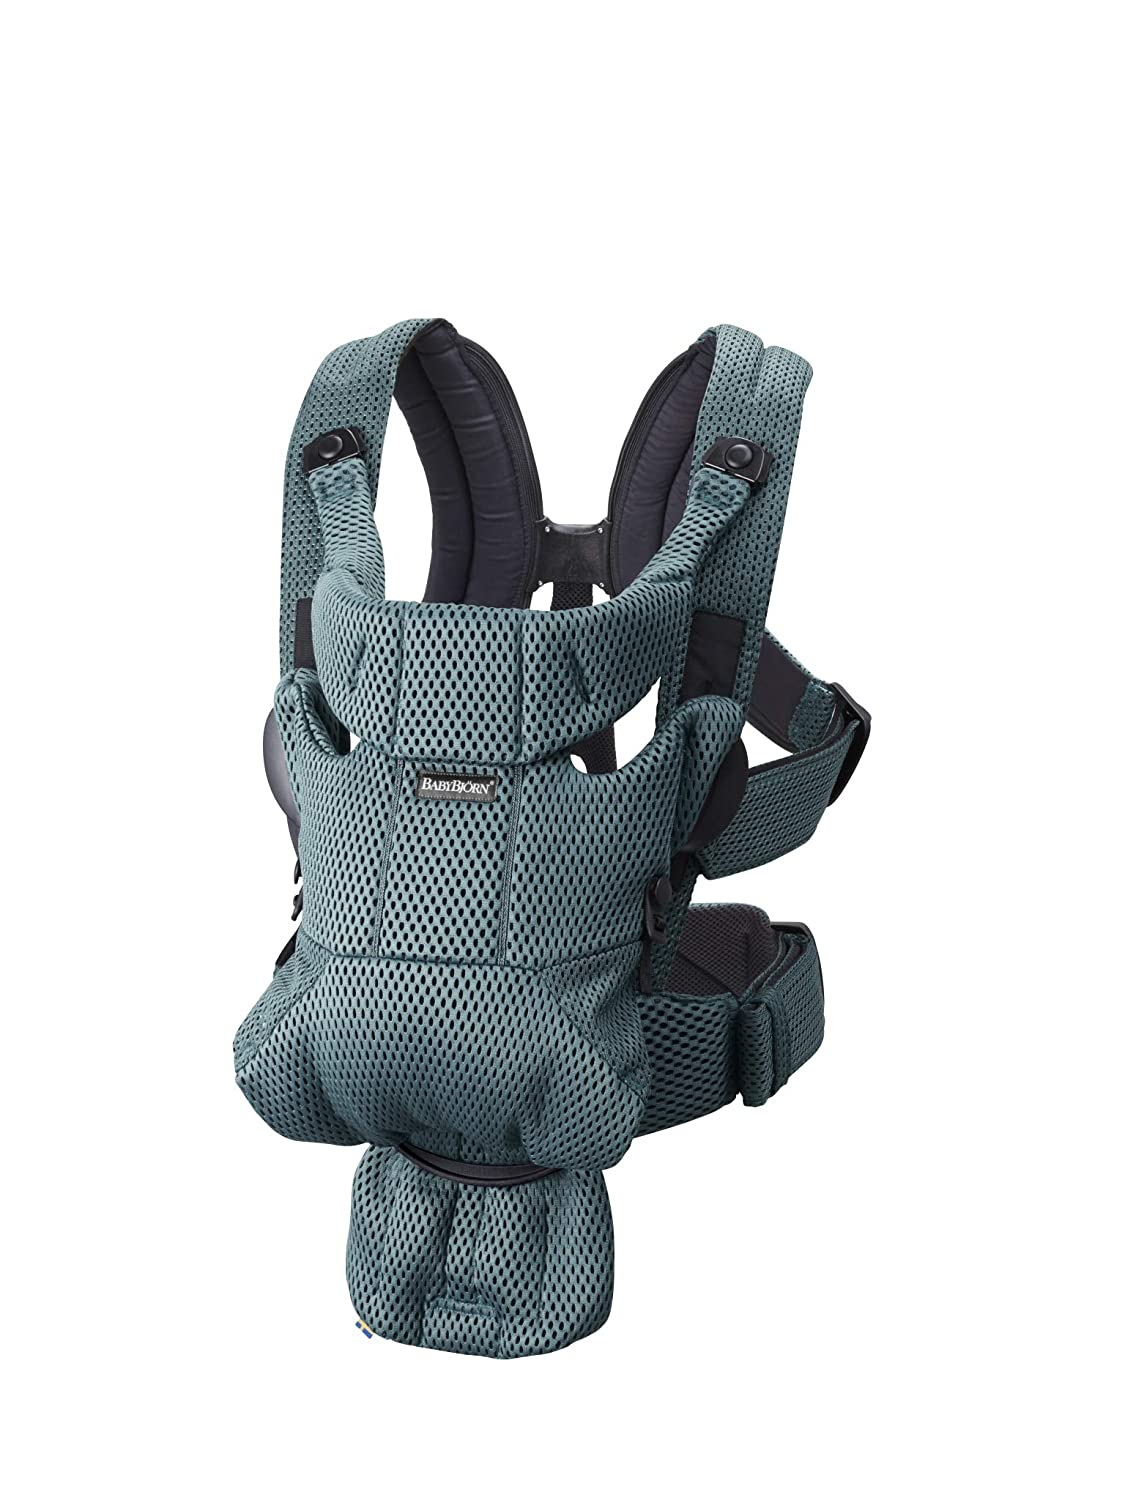 BABYBJÖRN Baby Carrier Free, 3D Mesh, Sage Green